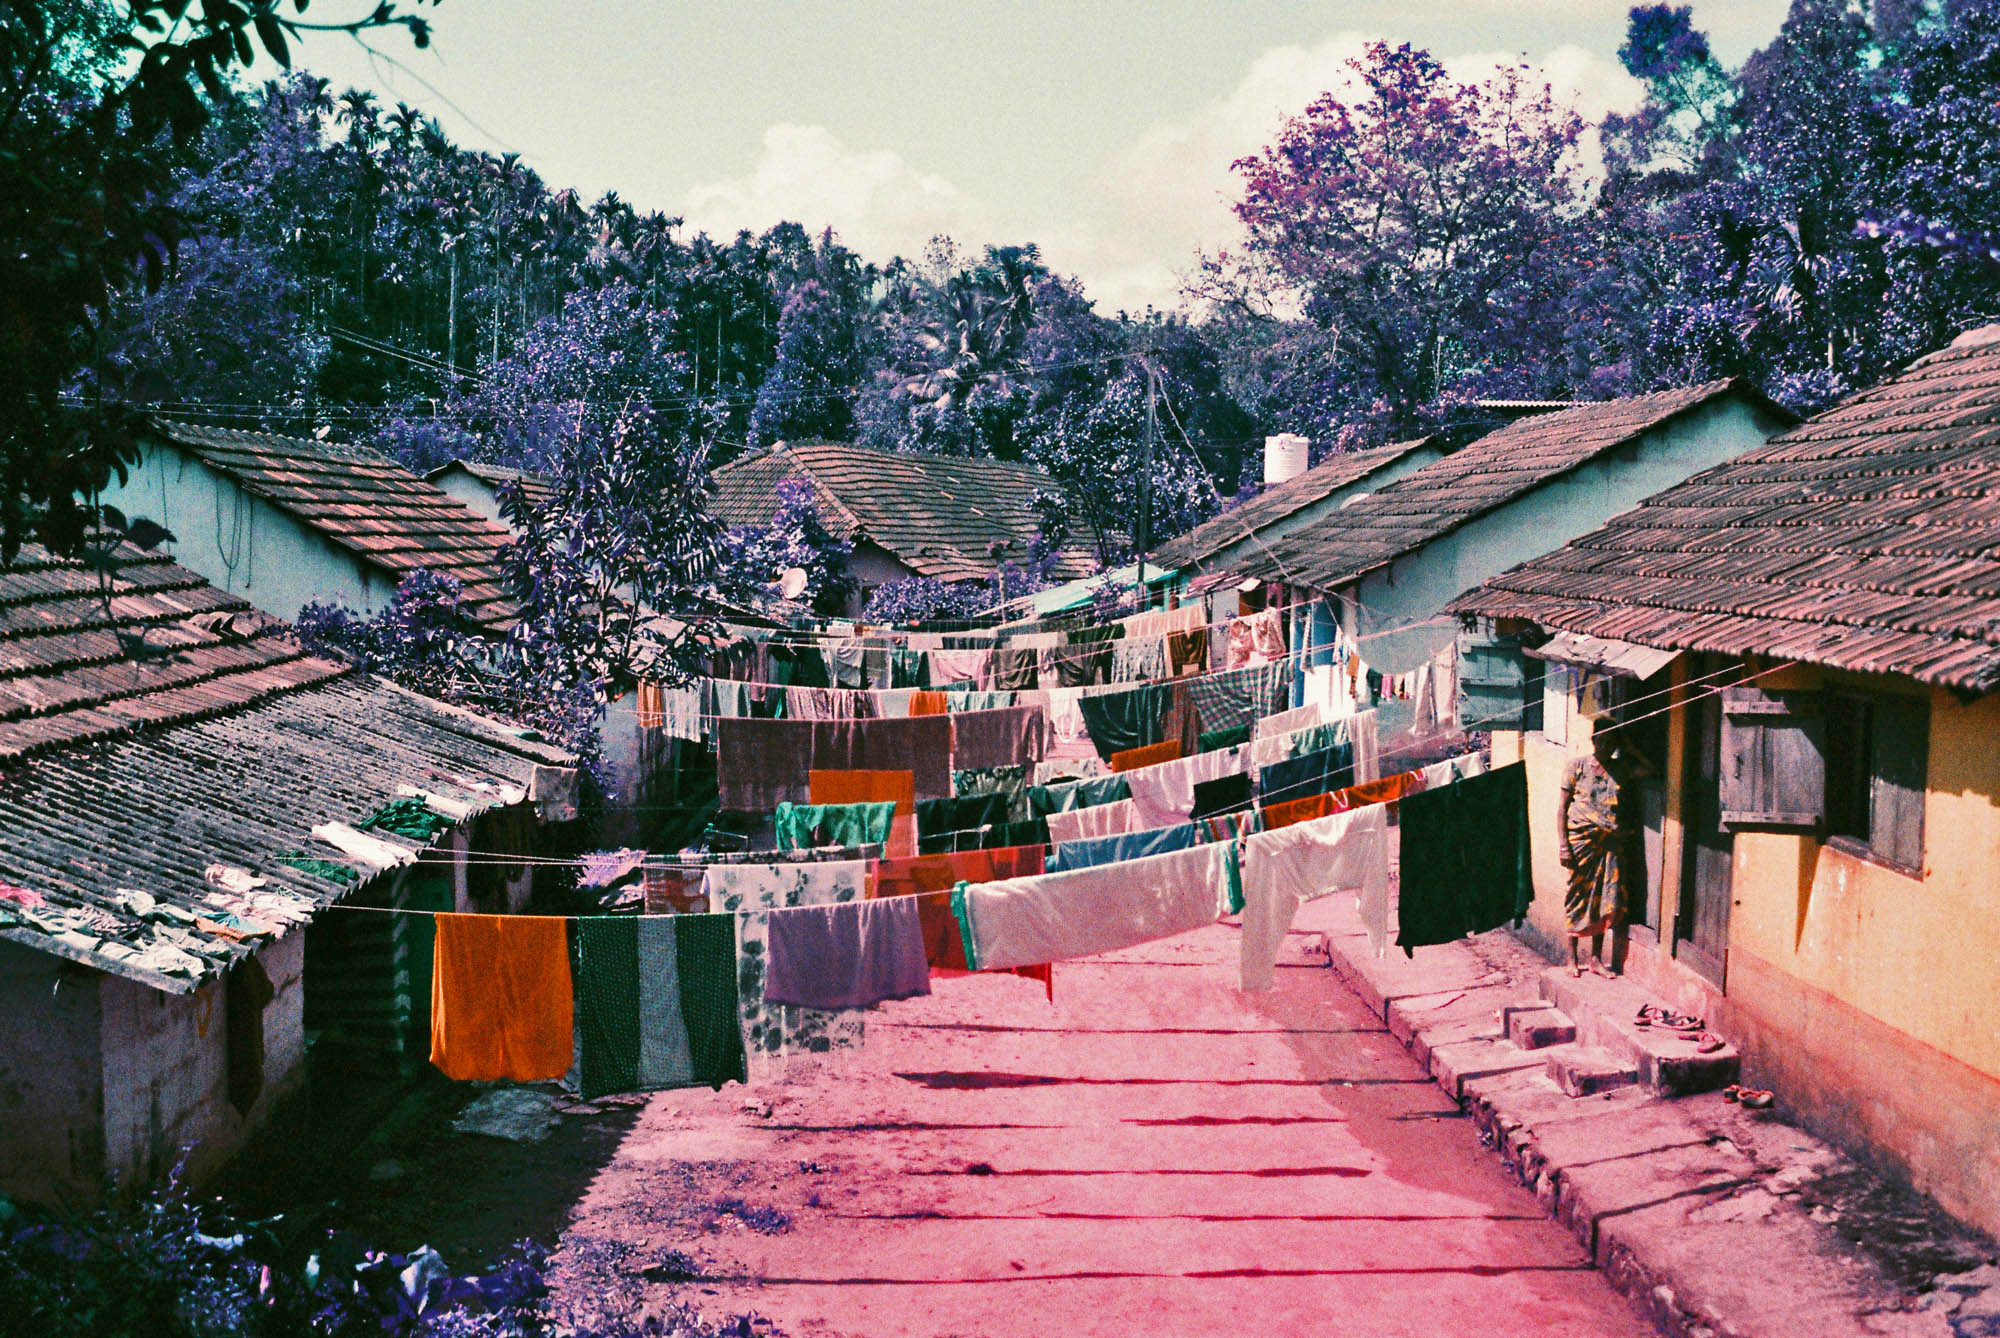 Laundry Day - Vythiri, India. @NeutralDensityMedia Benefits from a little over exposure and a bit of post to make the colours pop but great fun to shoot.